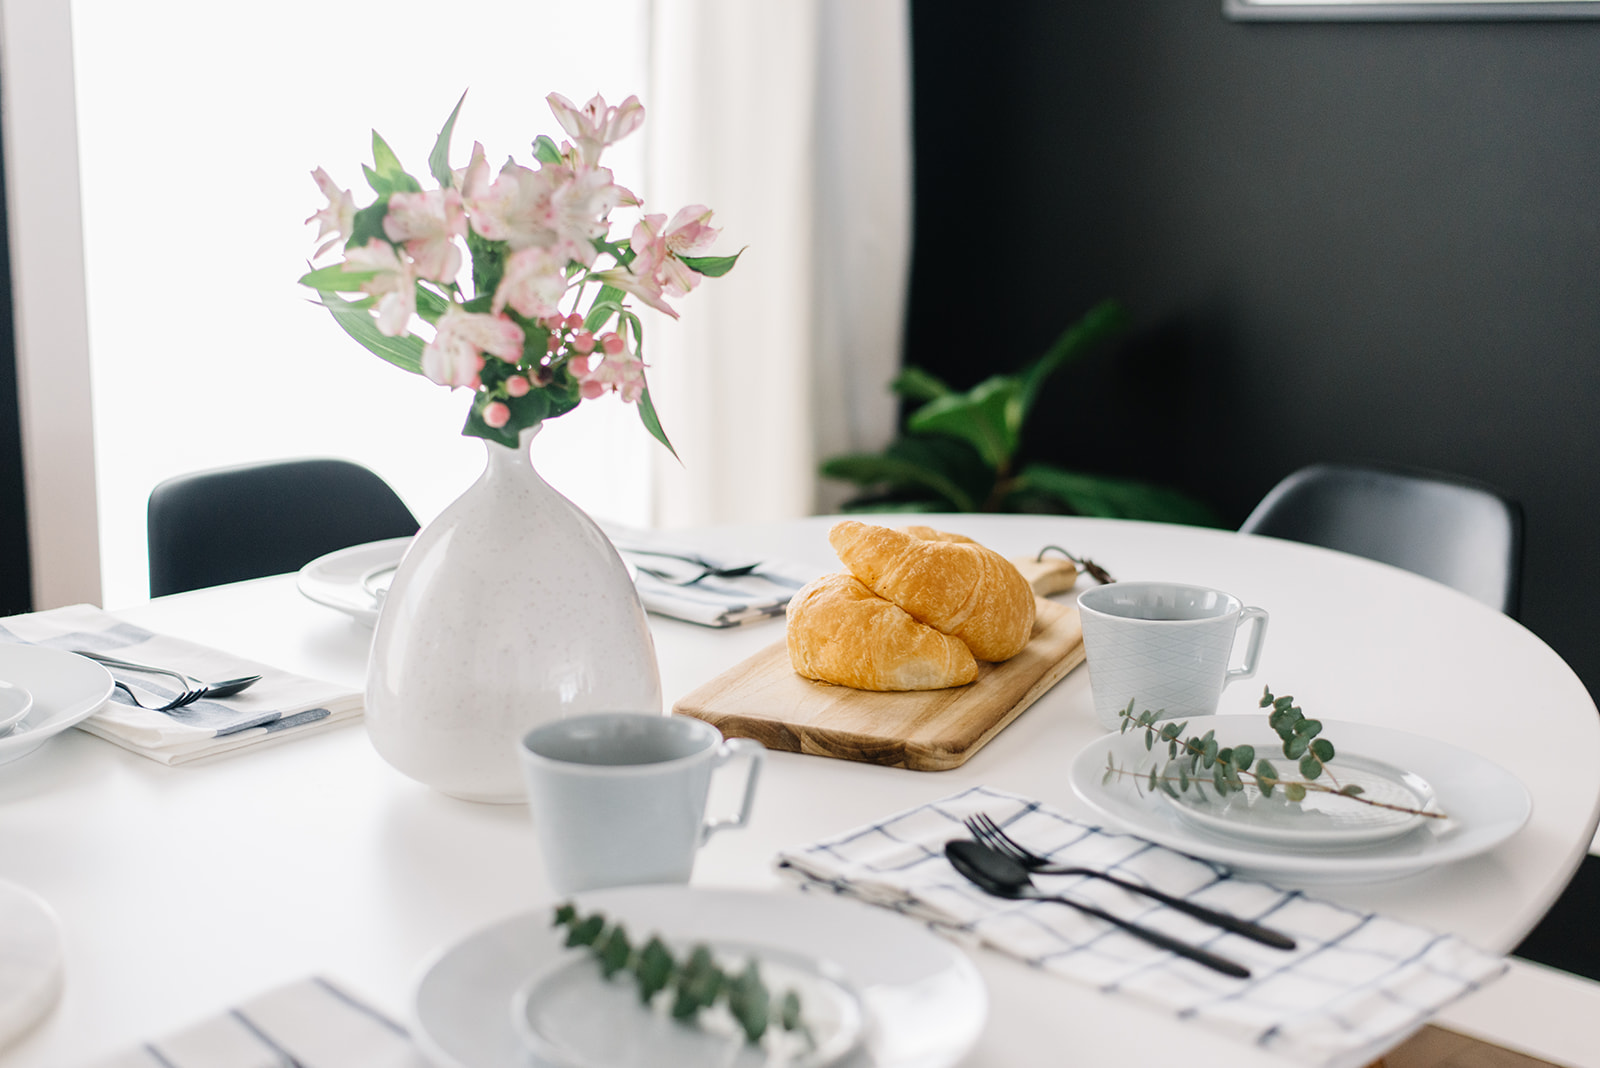 table setting with ikea dishes